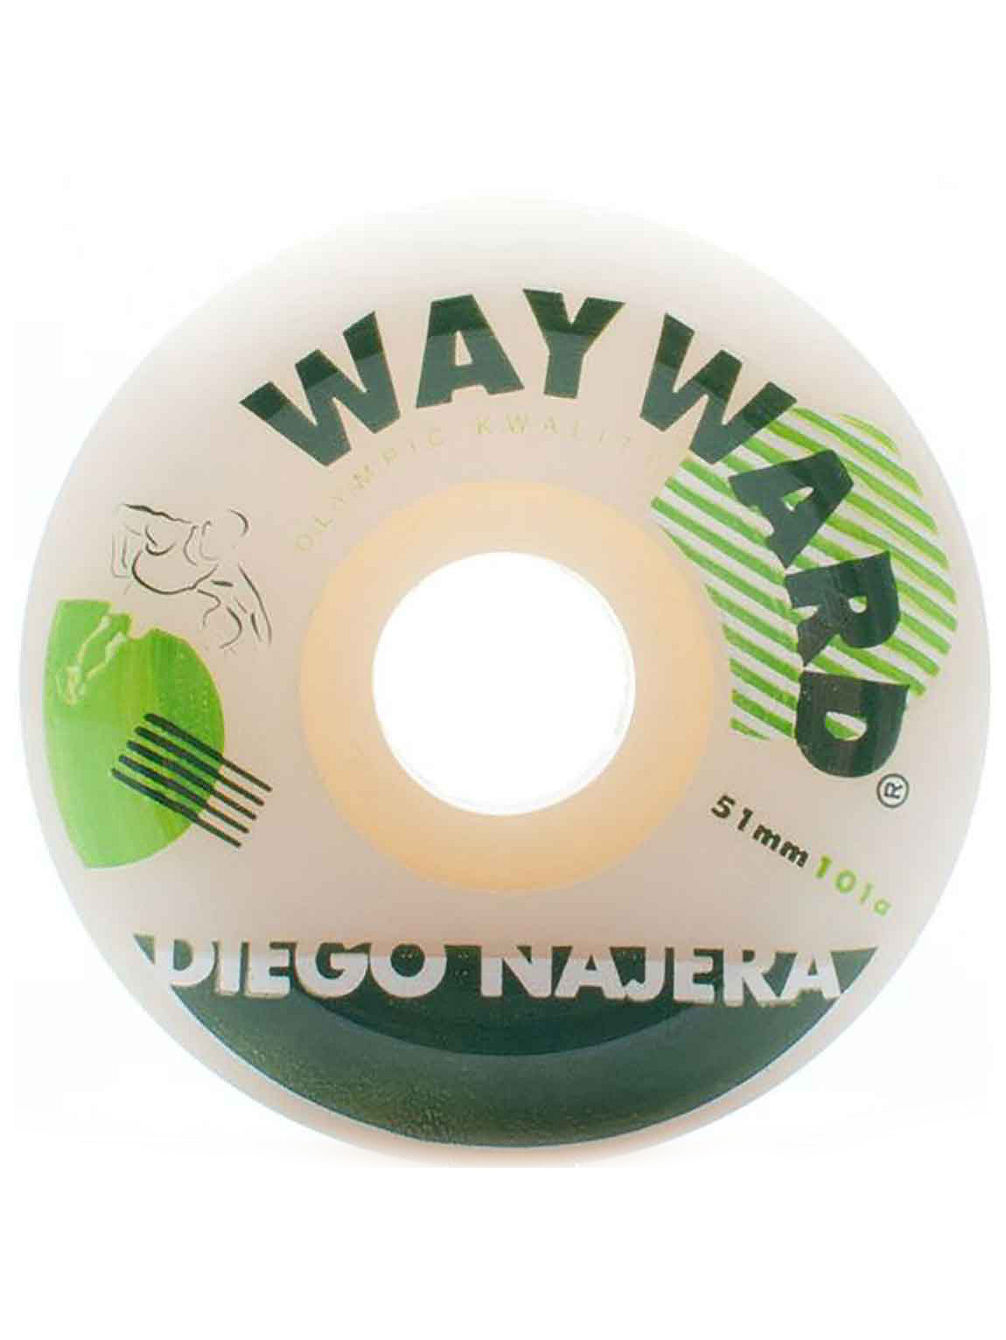 Diego Najera Hurdle 101A 51mm Wheels